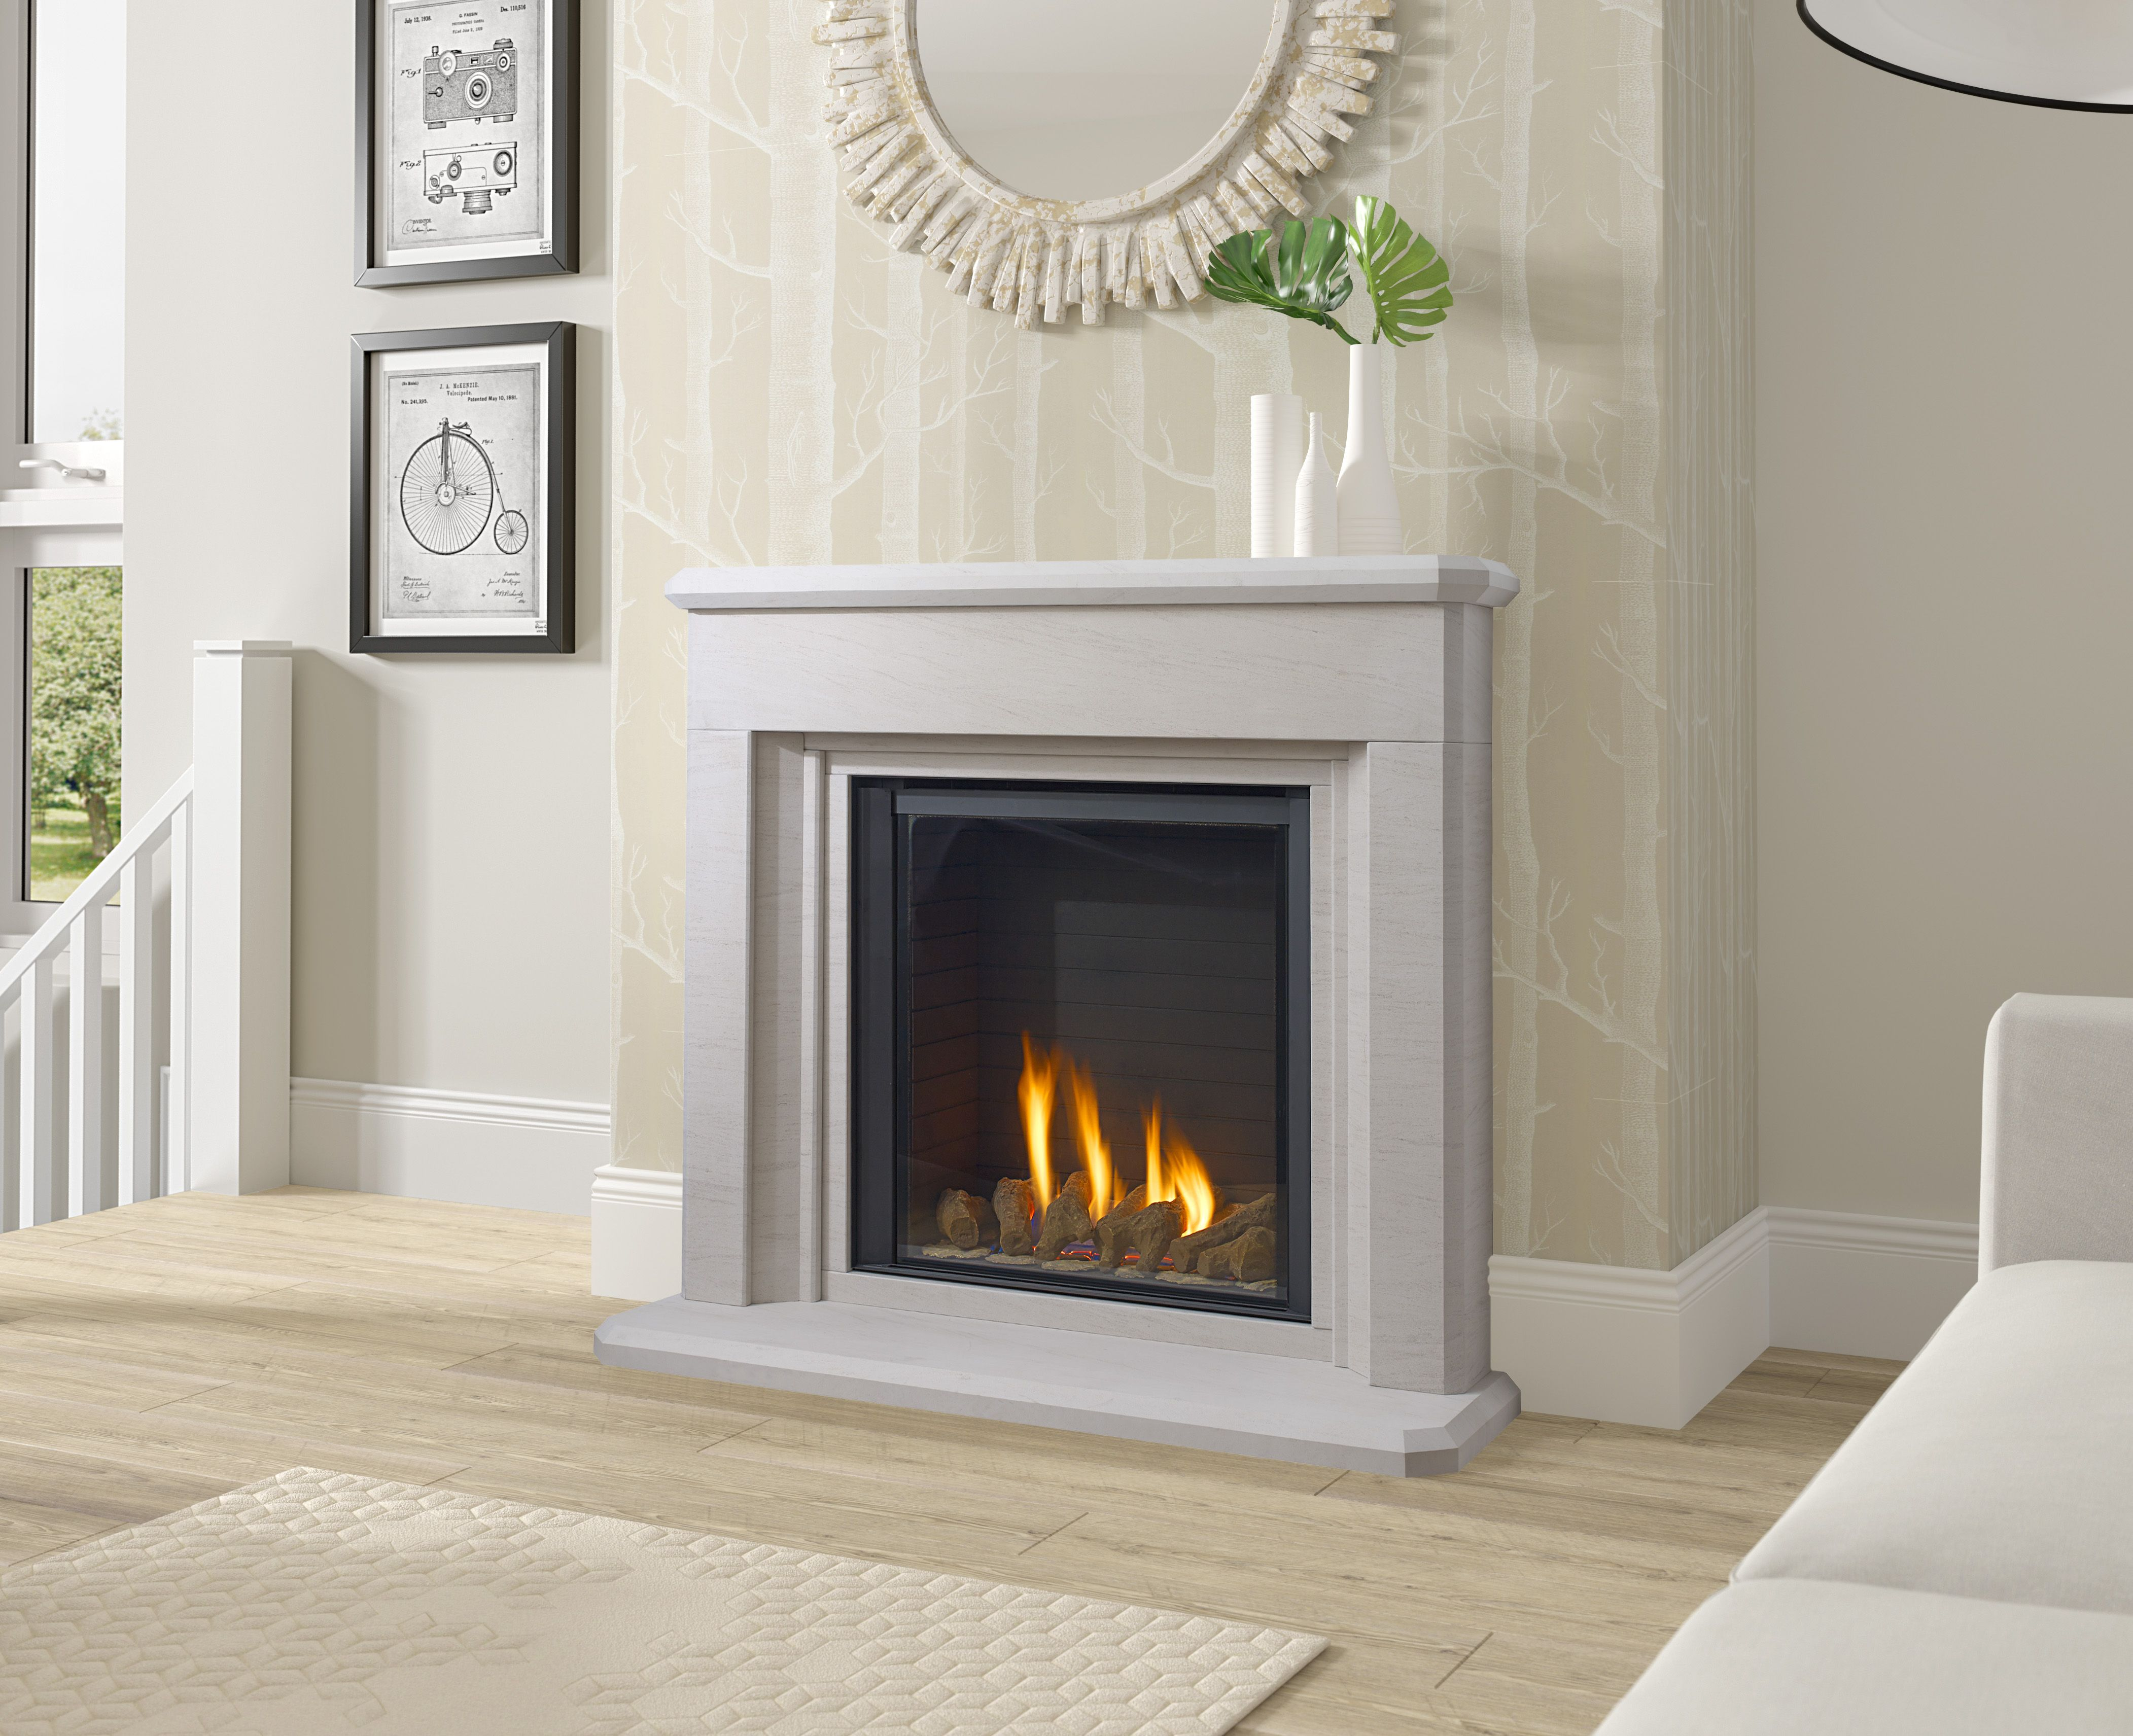 Paragon P9 Leighton Suite To Learn More About This Design Or To Request A Brochure Contemporary Fireplace Contemporary Fireplace Designs Indoor Gas Fireplace